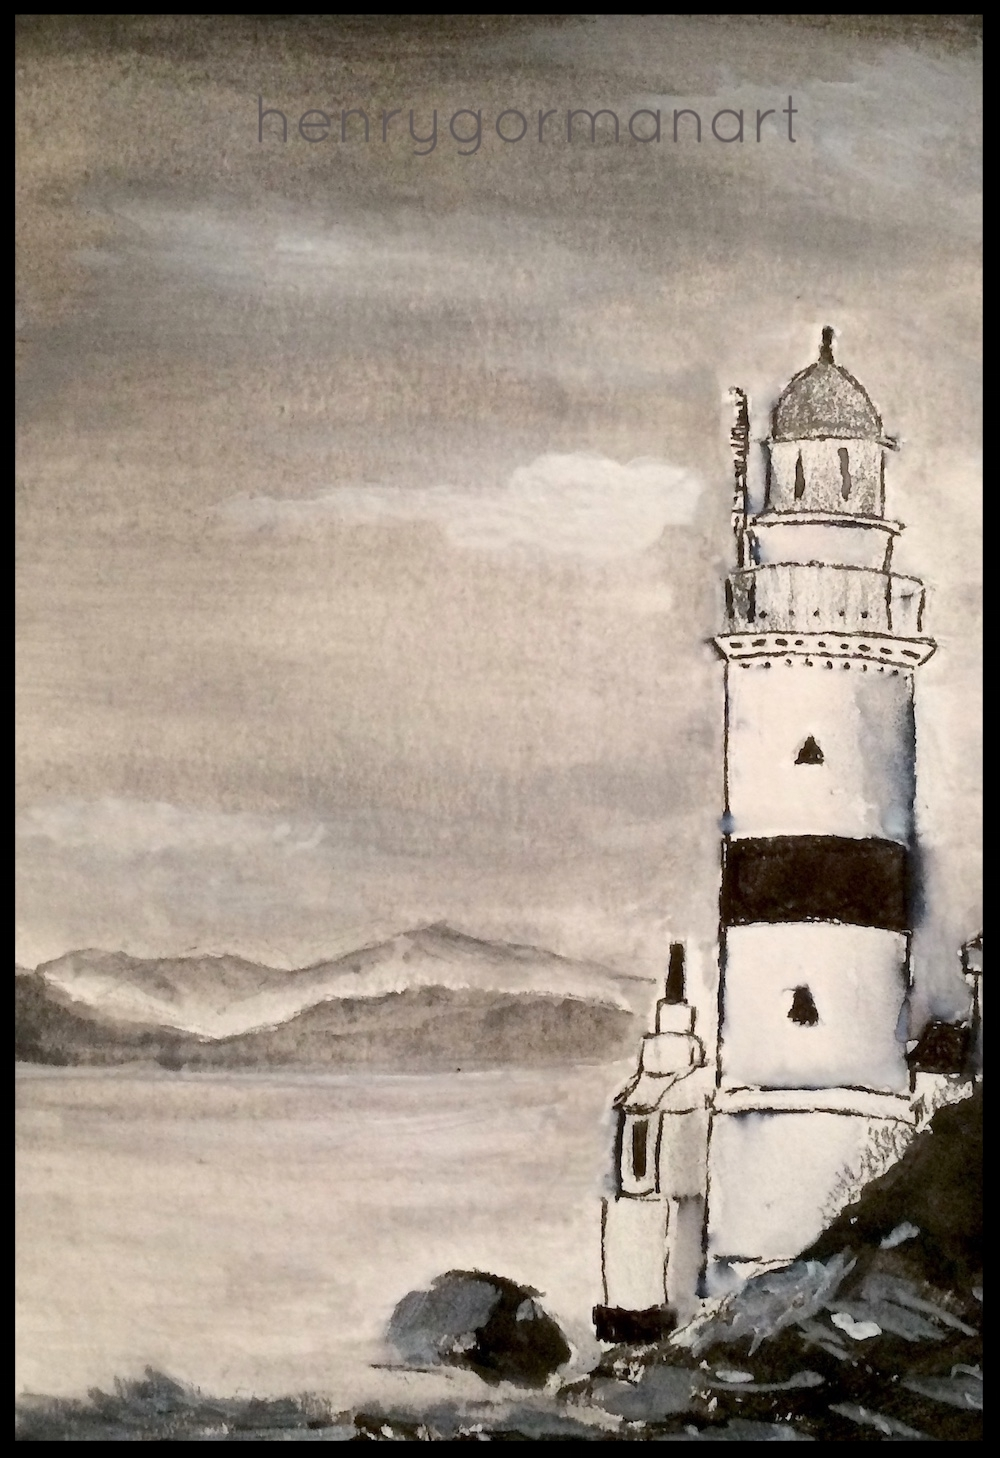 'Cloch lighthouse Gourock'